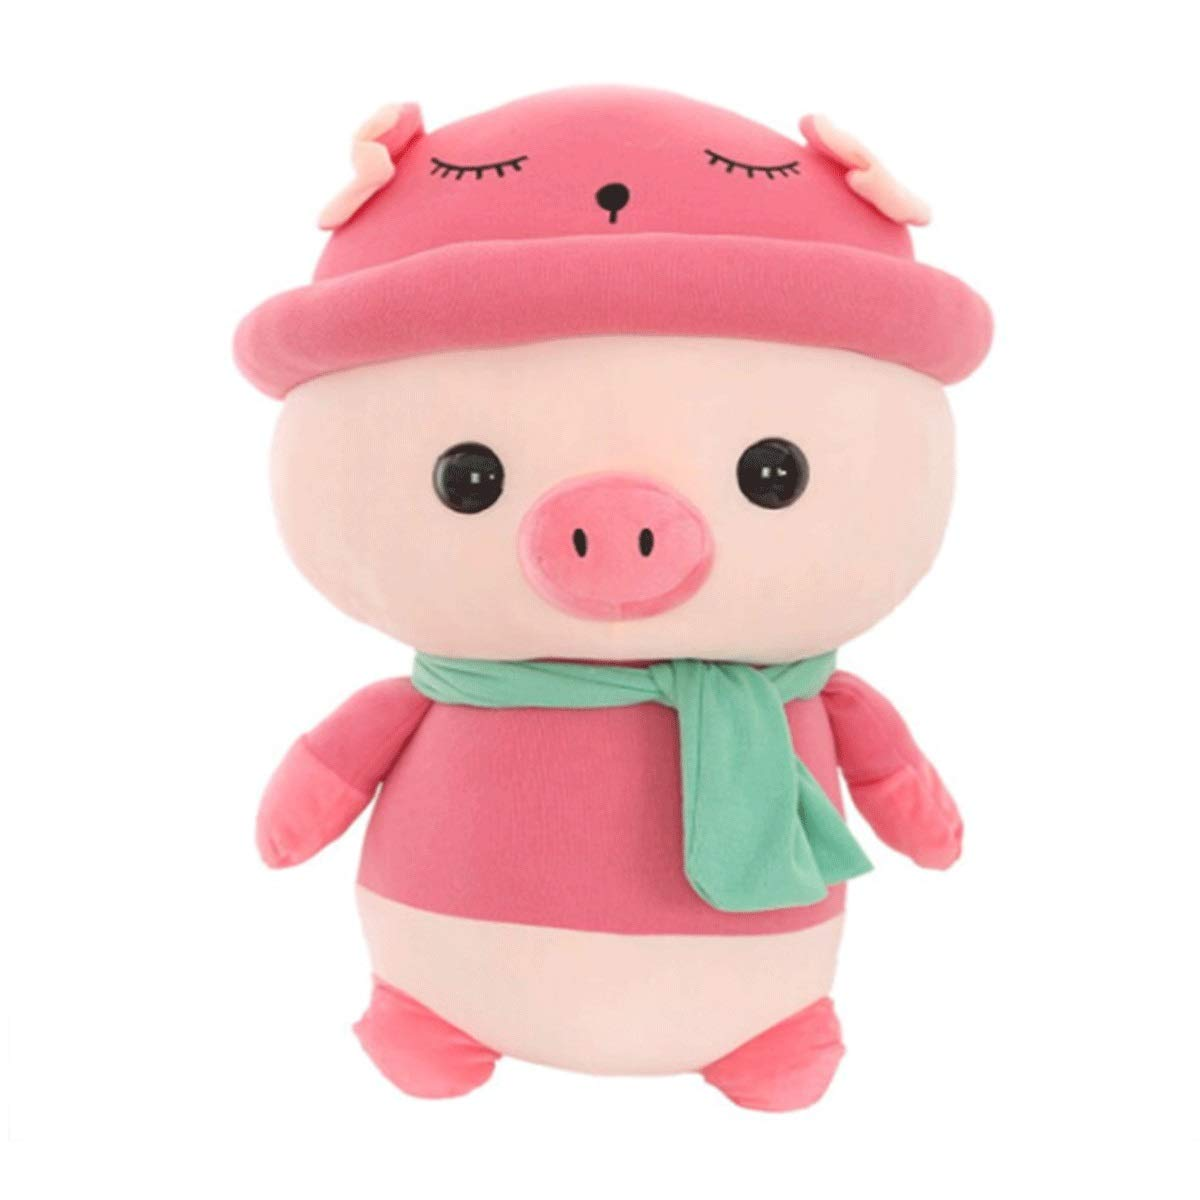 8haowenju Plush Toys, Cute Plush Toy Pigs, Doll Sleeping Pillows, Birthday Gifts, Pig Year Mascots, Multiple colors and Sizes, Best Gift Latest Models